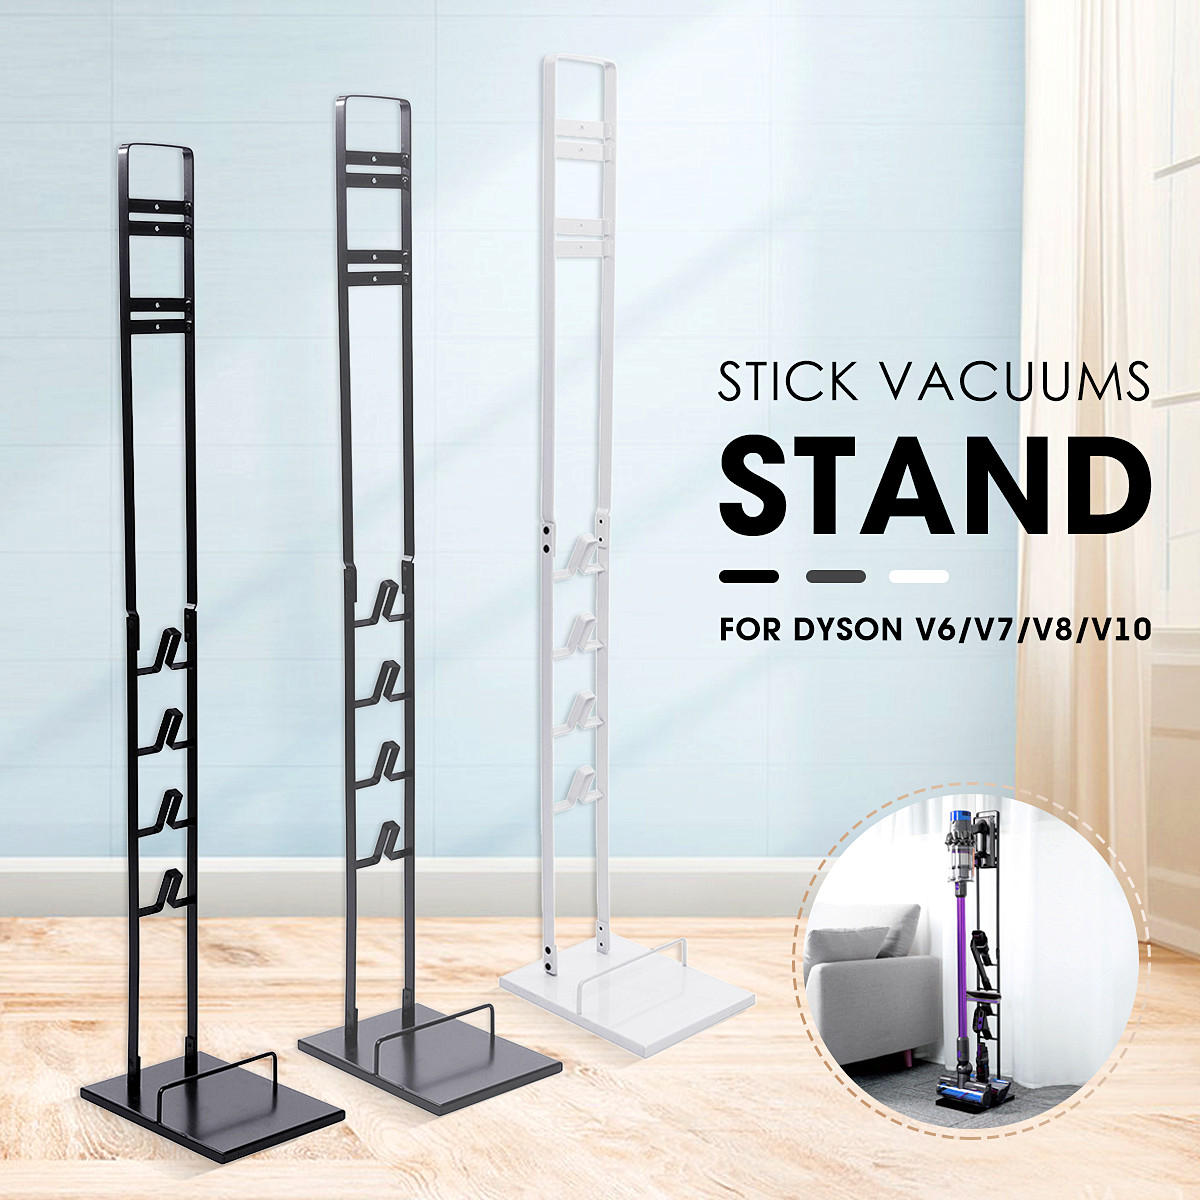 Home Storage Rack Steel Stick Vacuum Cleaner Stand For Dyson V6 V7 V8 V10 Vacuum Cleaner Storage Accessories New Arrival 2019Home Storage Rack Steel Stick Vacuum Cleaner Stand For Dyson V6 V7 V8 V10 Vacuum Cleaner Storage Accessories New Arrival 2019